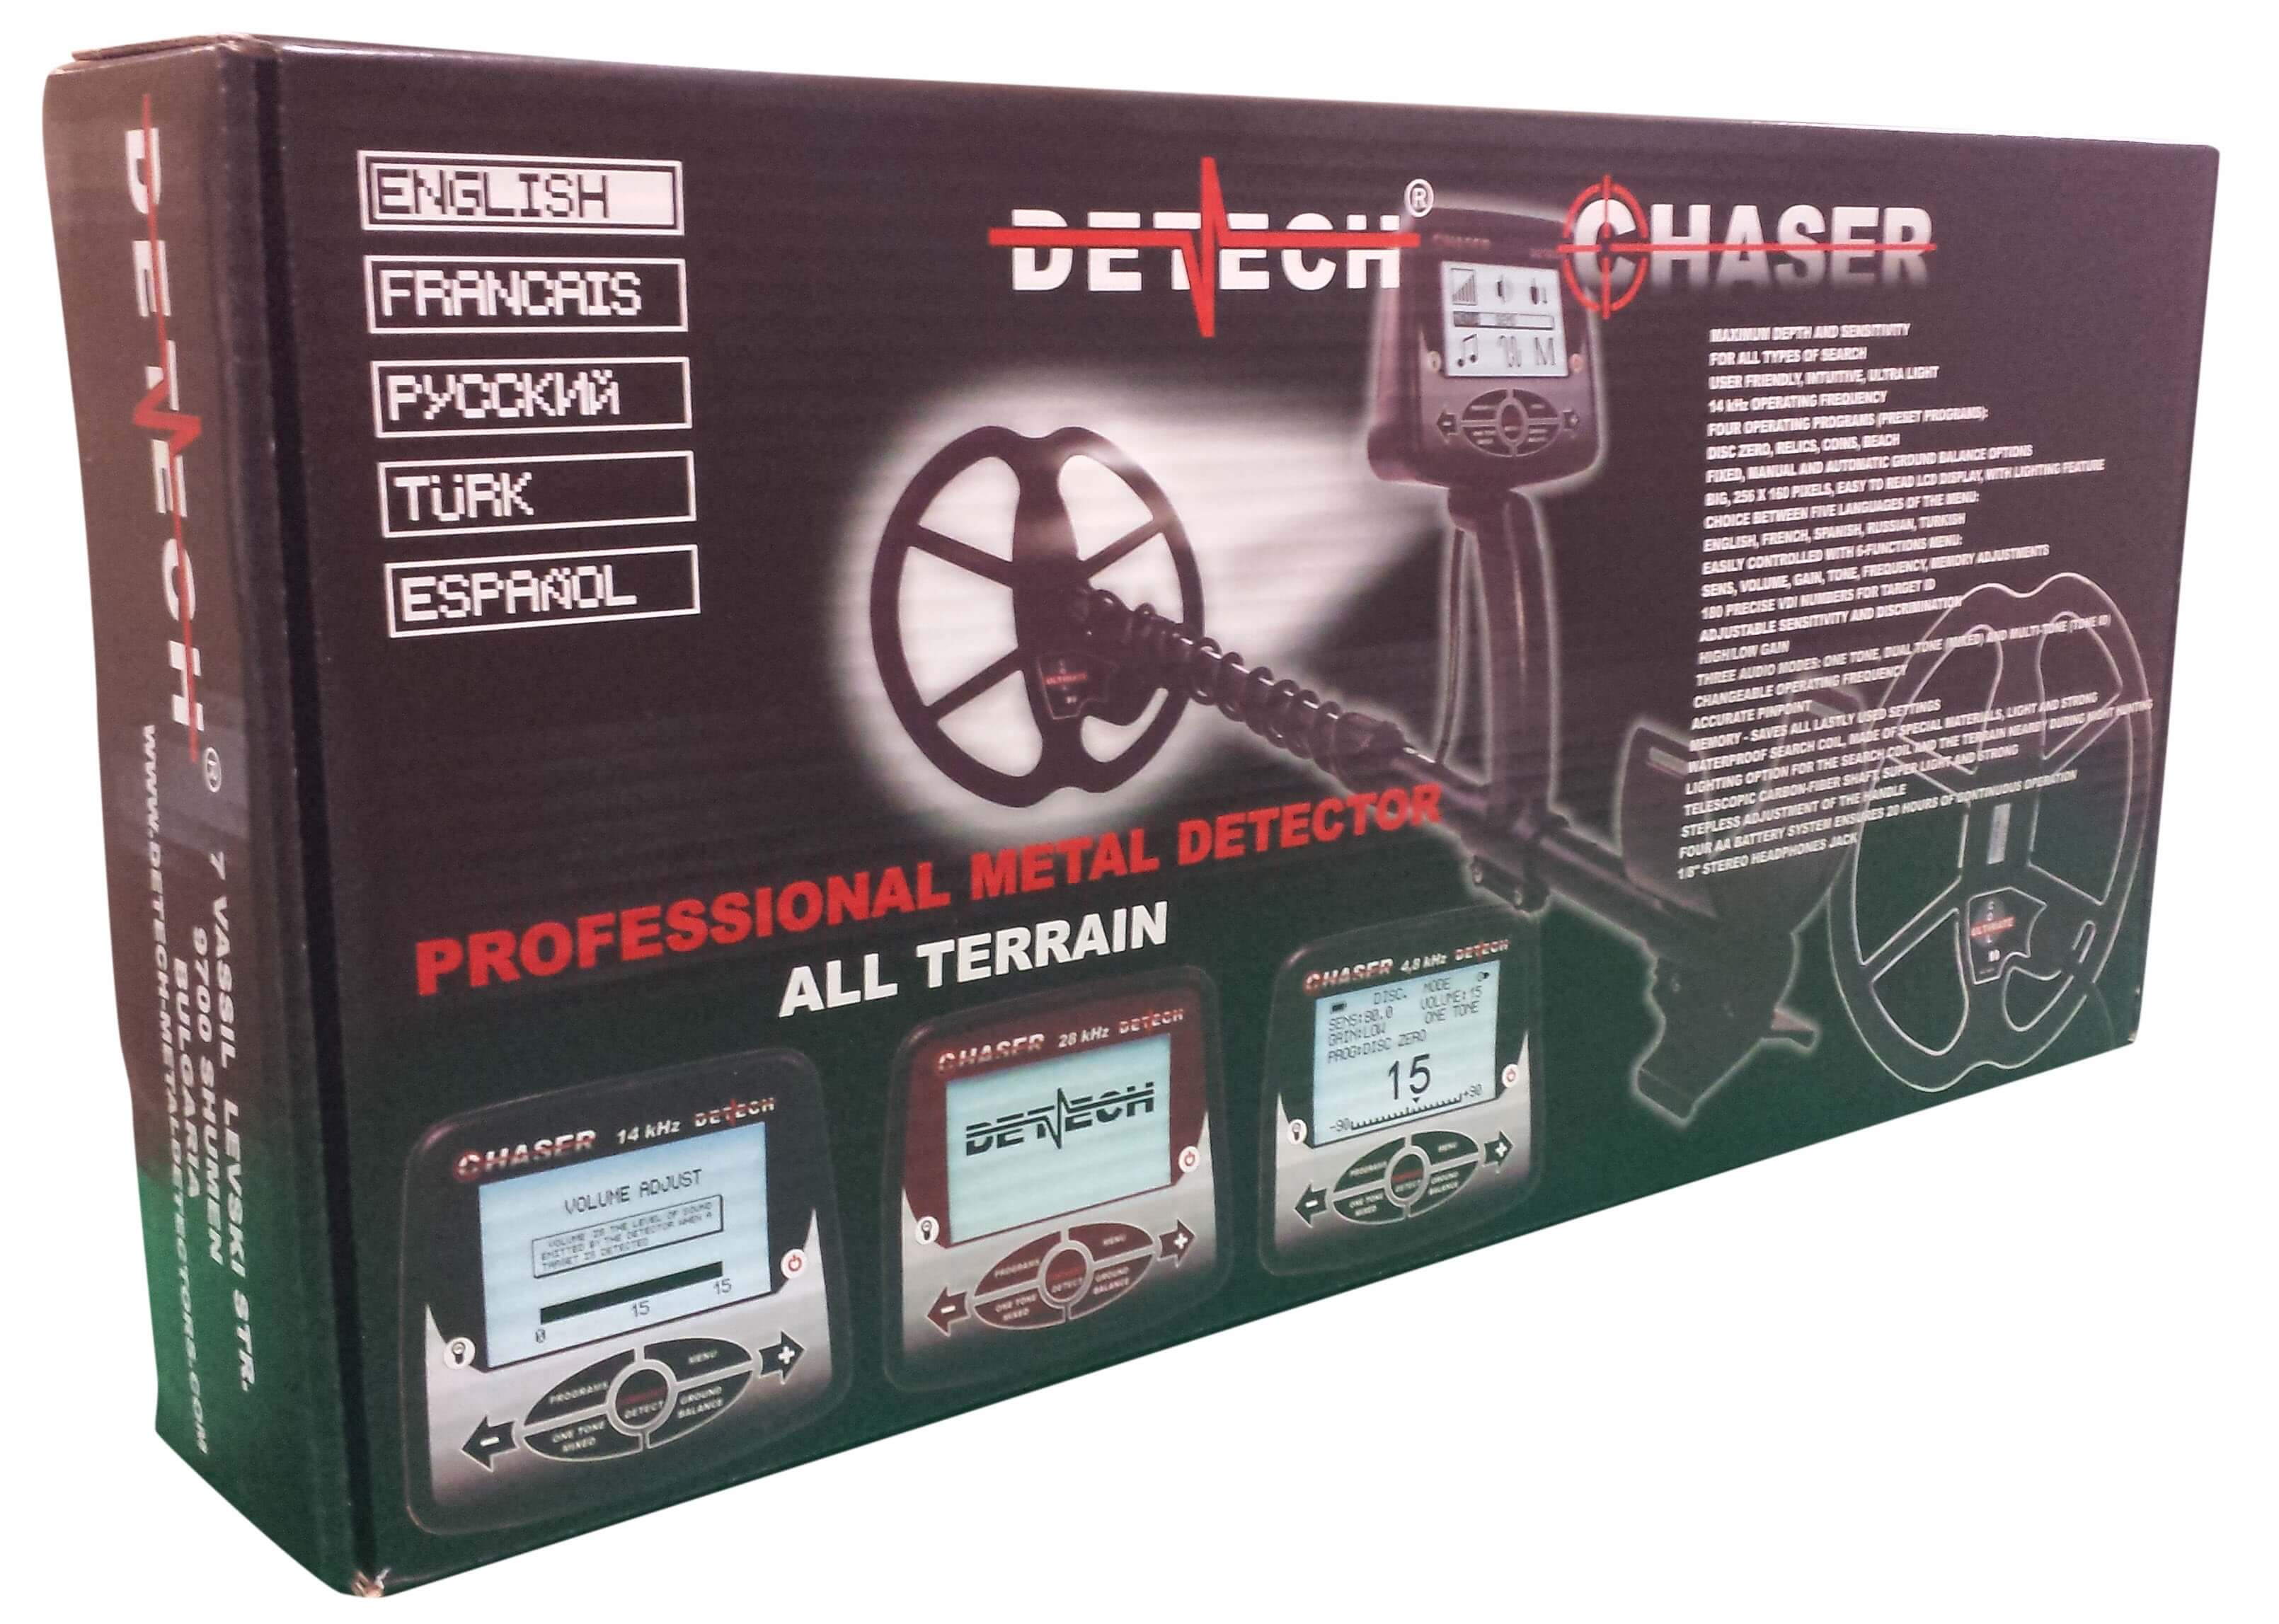 "Detech Chaser Metal Detector with 9"" Ultimate Coil Ships in a 31"" x 5"" x 14"" Color Box"